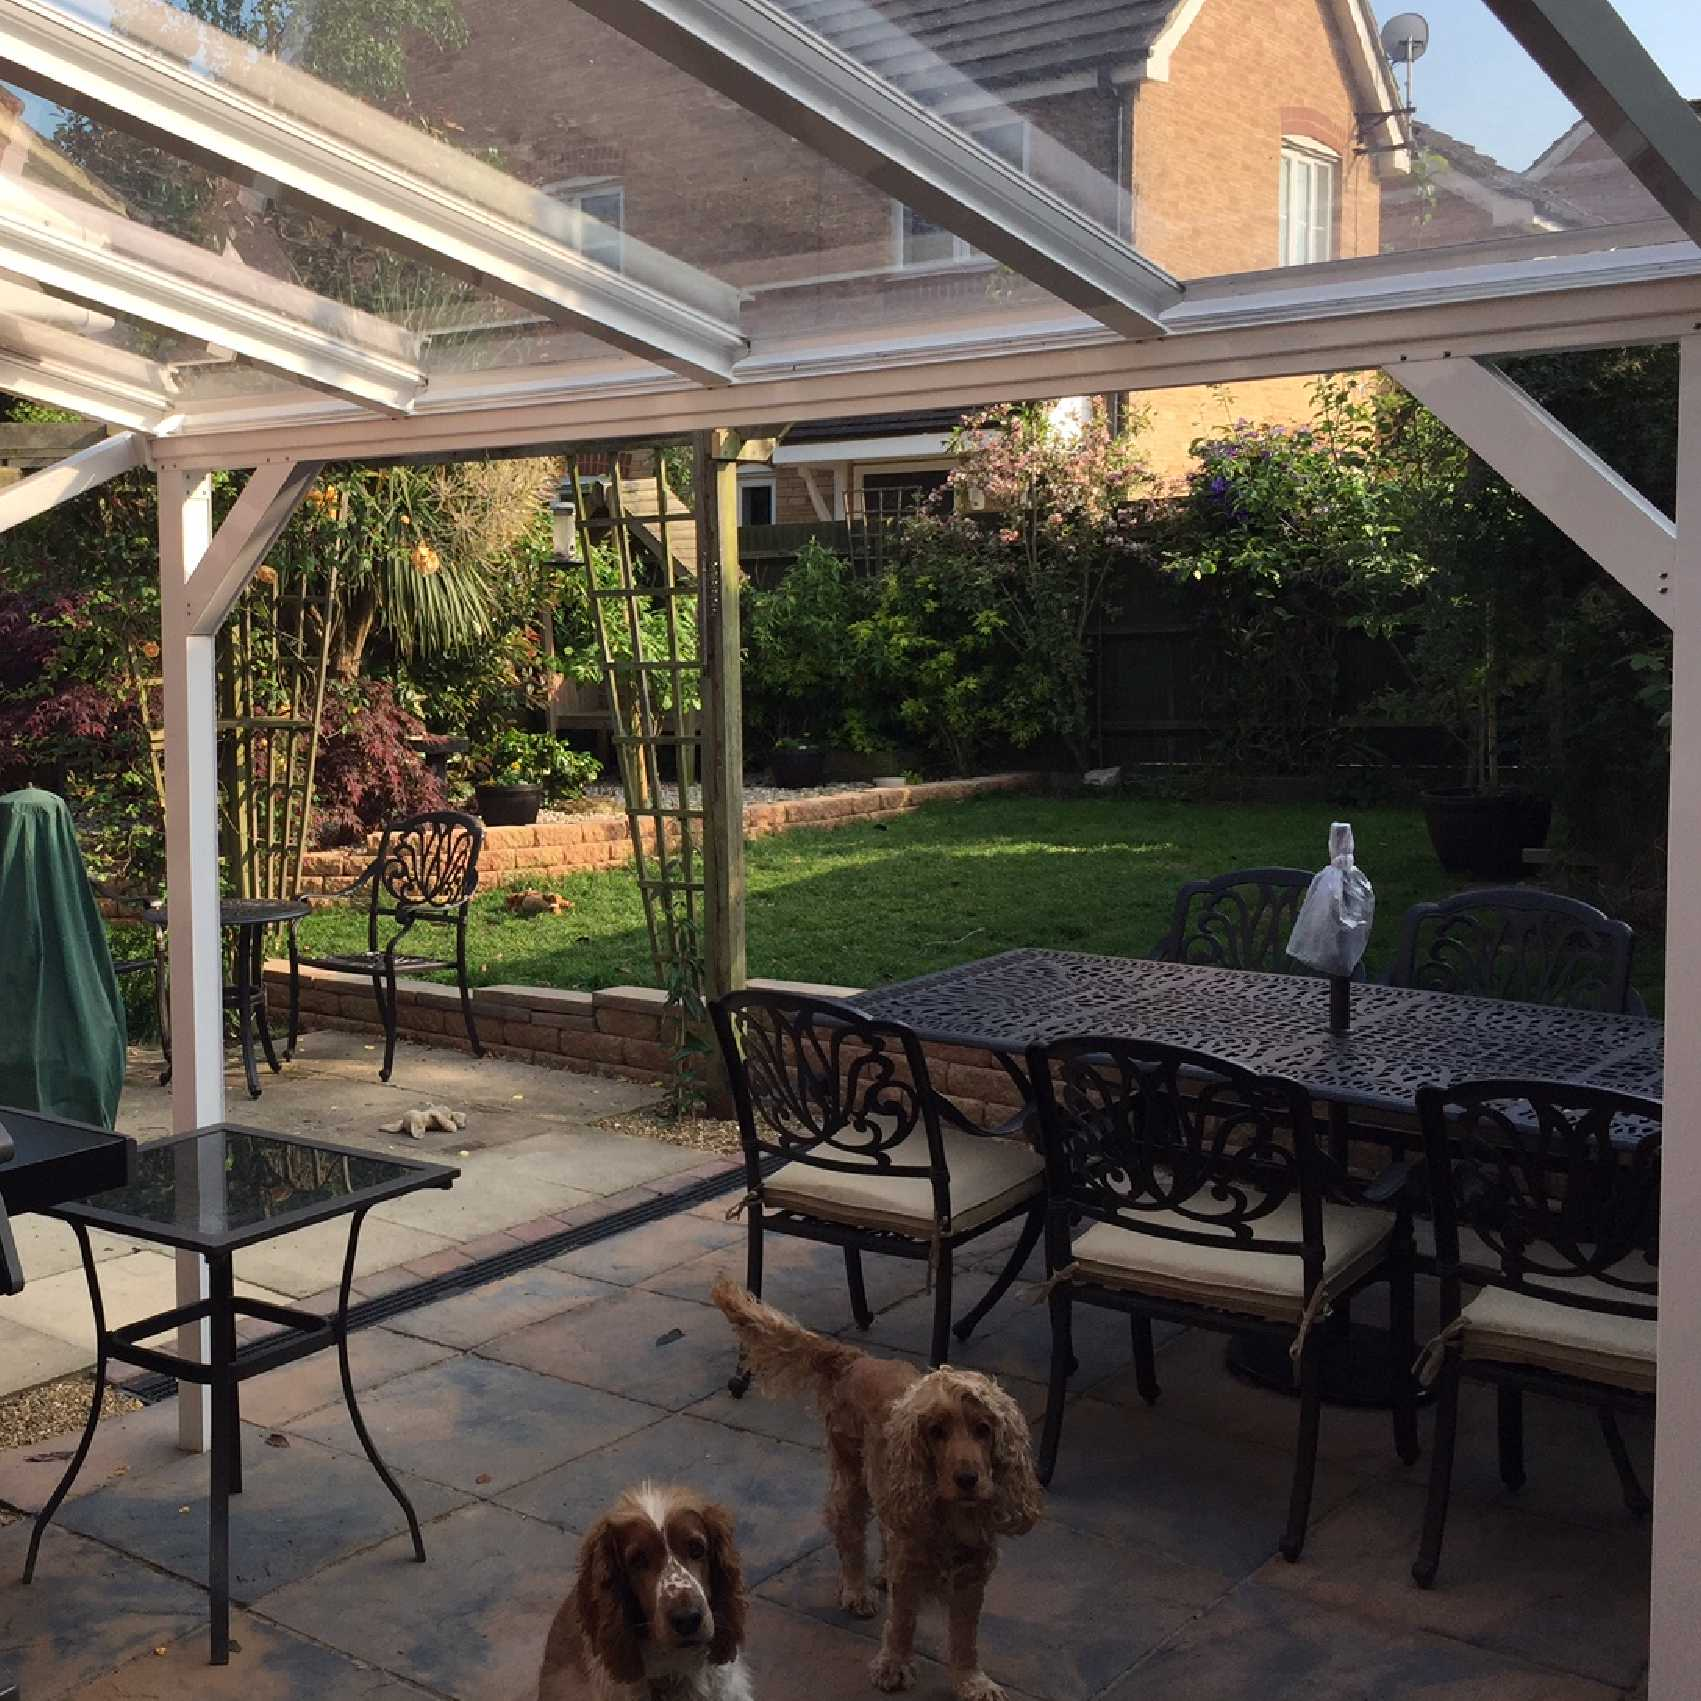 Affordable Omega Smart White Lean-To Canopy with 6mm Glass Clear Plate Polycarbonate Glazing - 7.7m (W) x 1.5m (P), (4) Supporting Posts